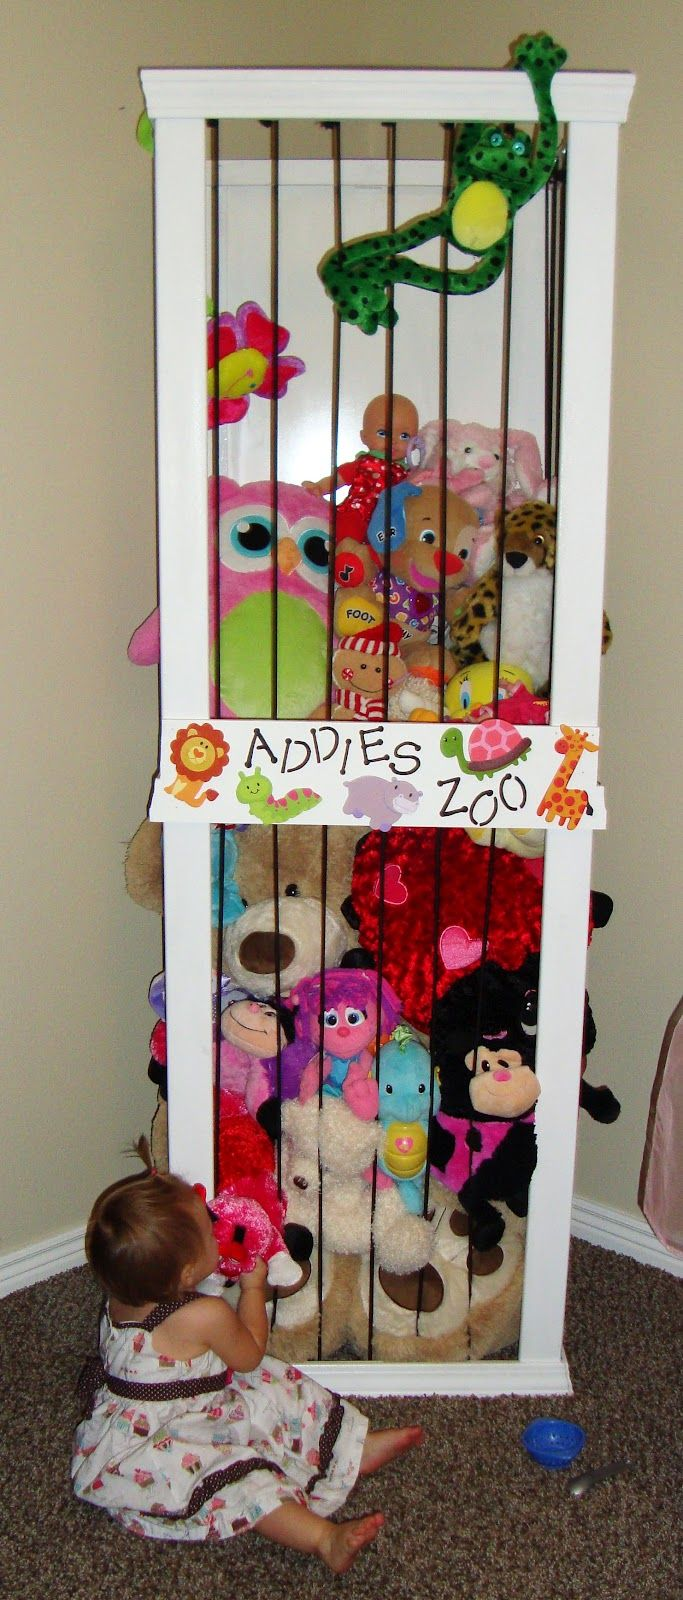 "For all those stuffed animals Mimi will be buying...LOL - Basic directions for building a stuffed animal storage ""zoo"" from The Keeper of the Cheerios: Addies Zoo"